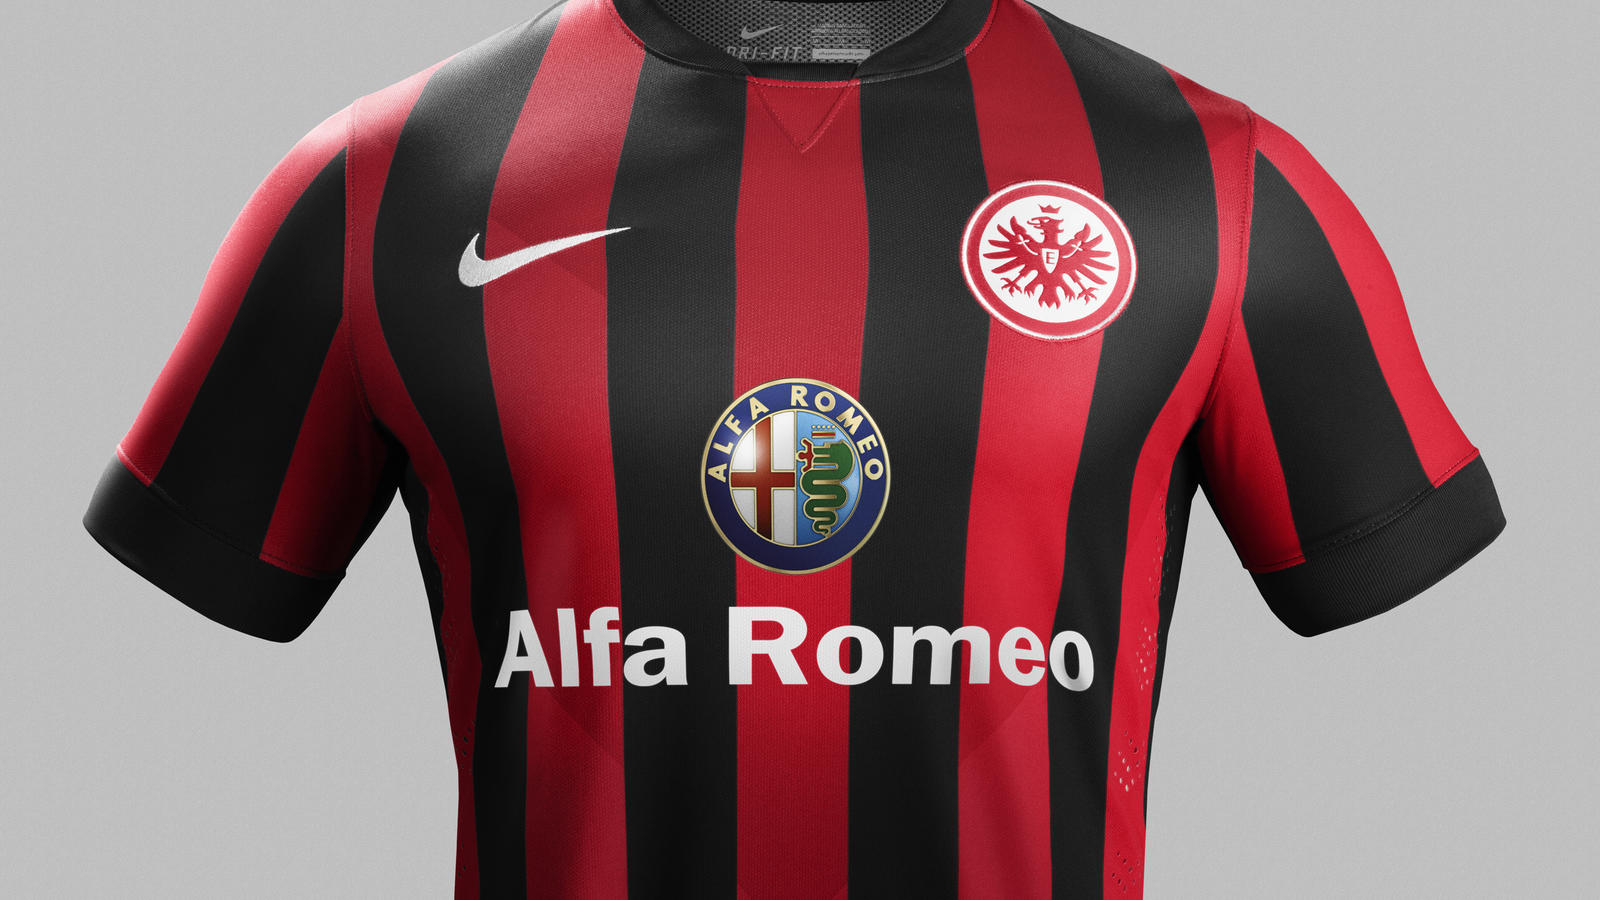 Eintracht Frankfurt and Nike Unveil New Home and Away Kits